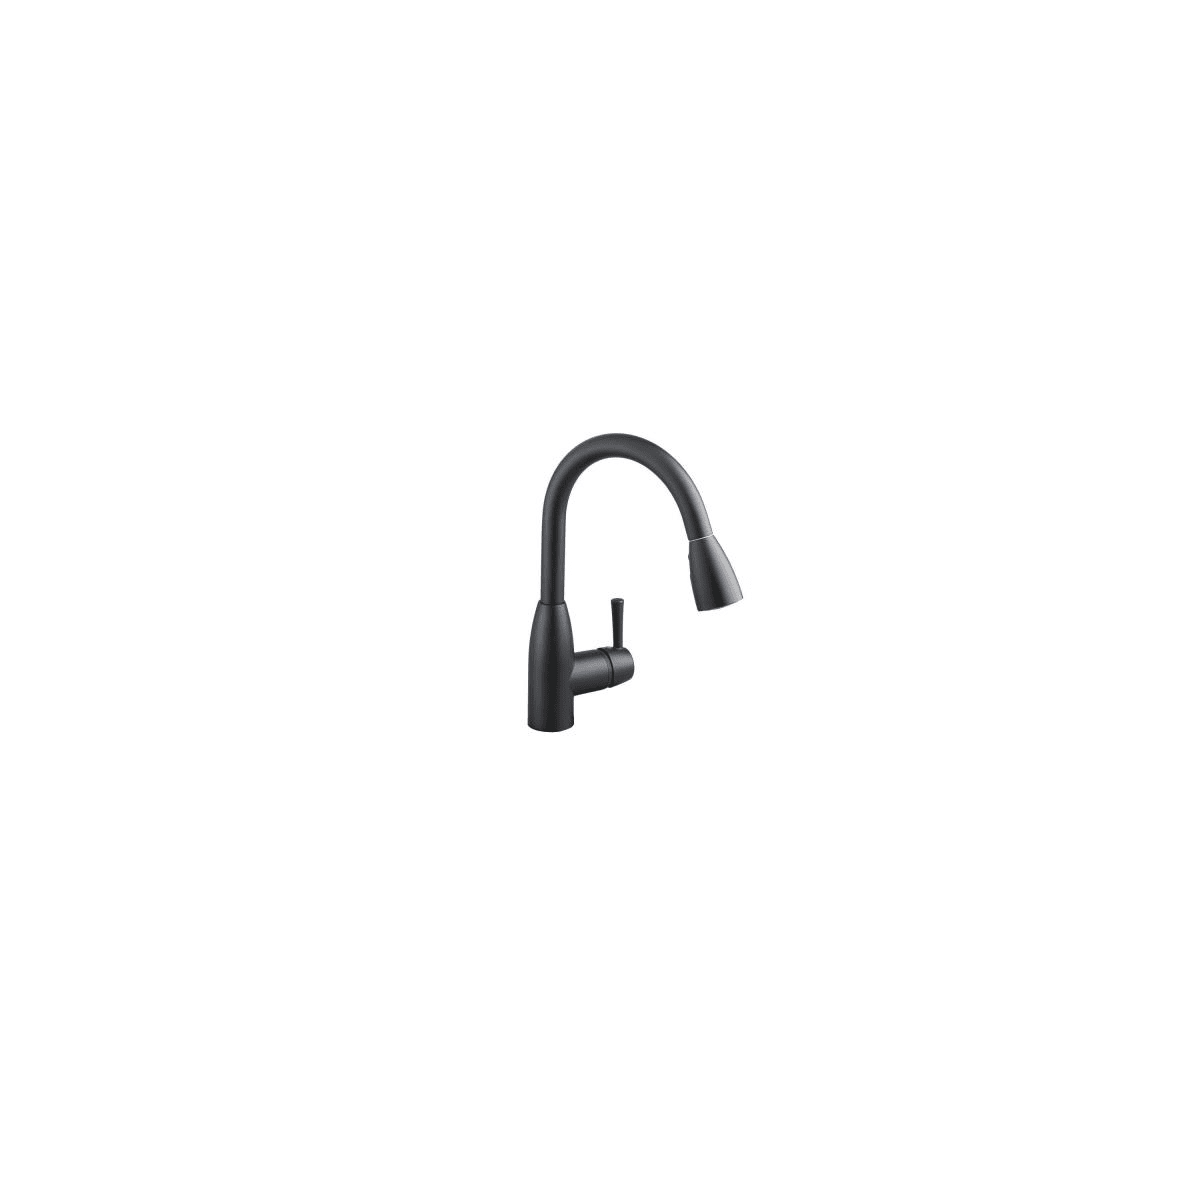 American Standard 4005mbf Matte Black Fairbury Pull Down High Arc Kitchen Faucet Faucet Com